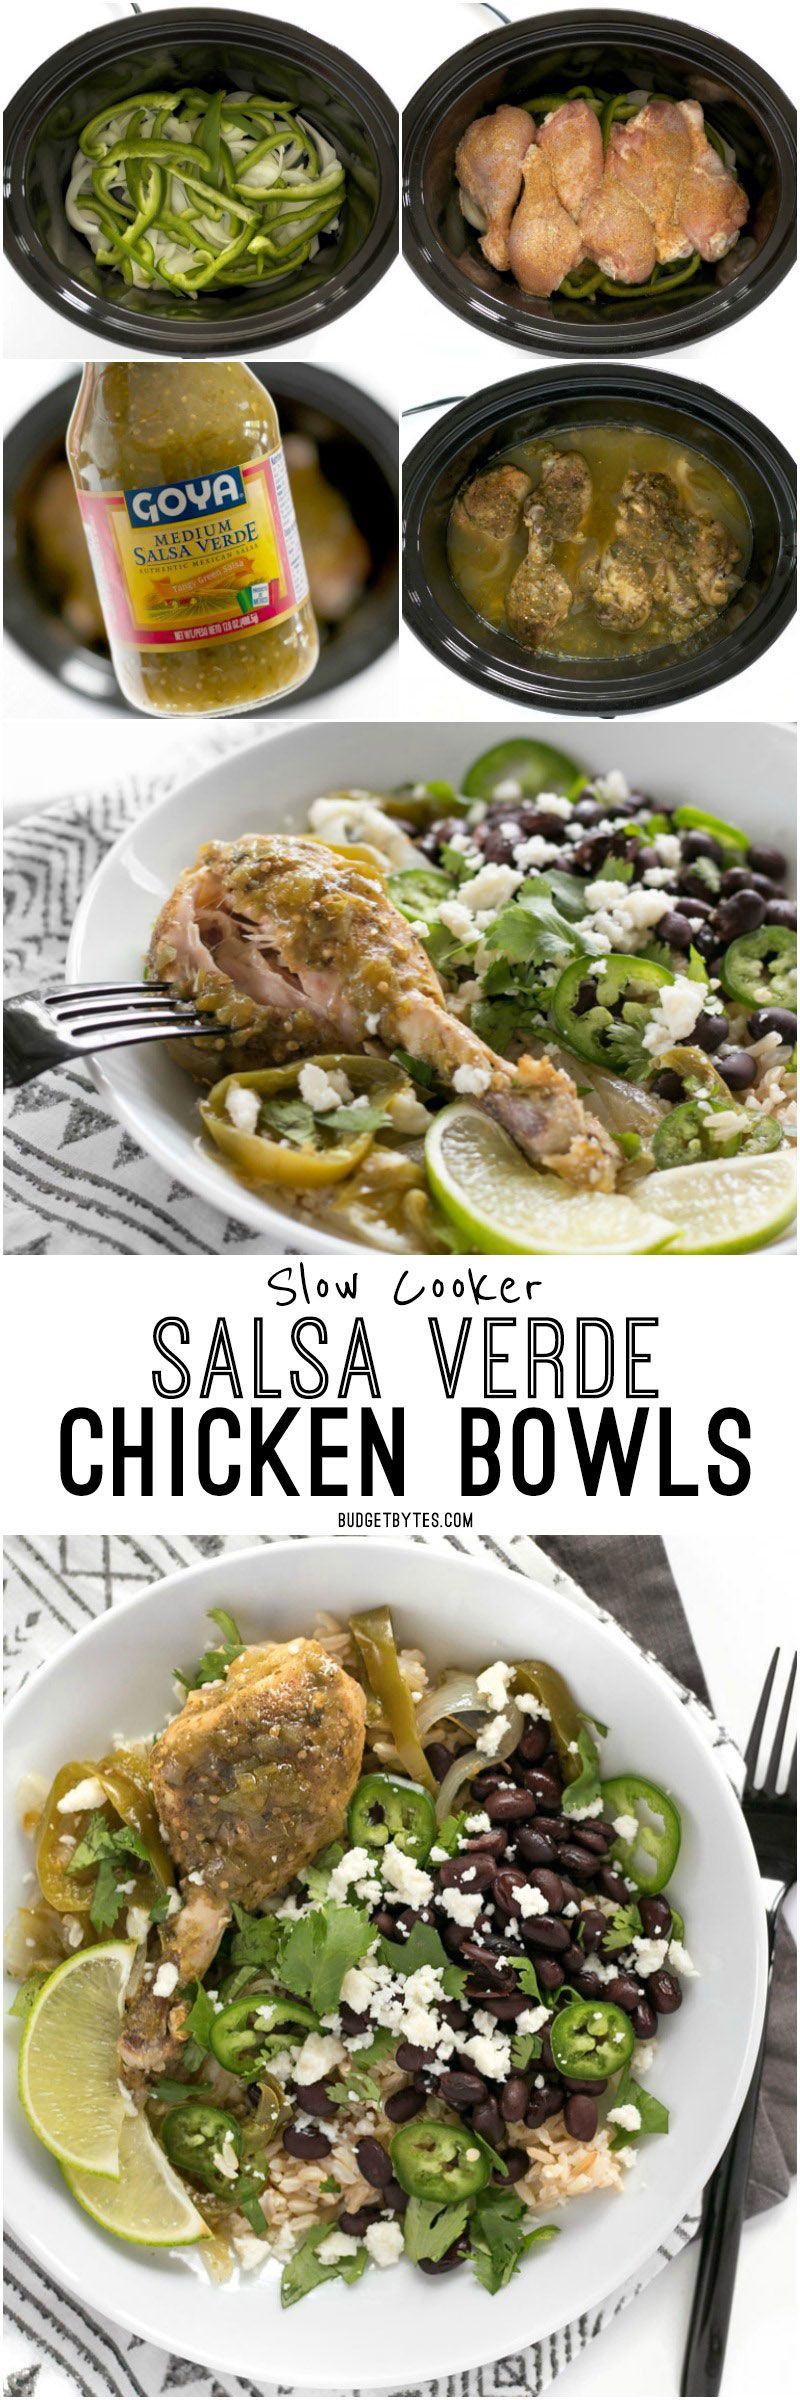 Slow Cooker Salsa Verde Chicken is a fast, easy, and flavorful dinner full of southwest flavors. BudgetBytes.com